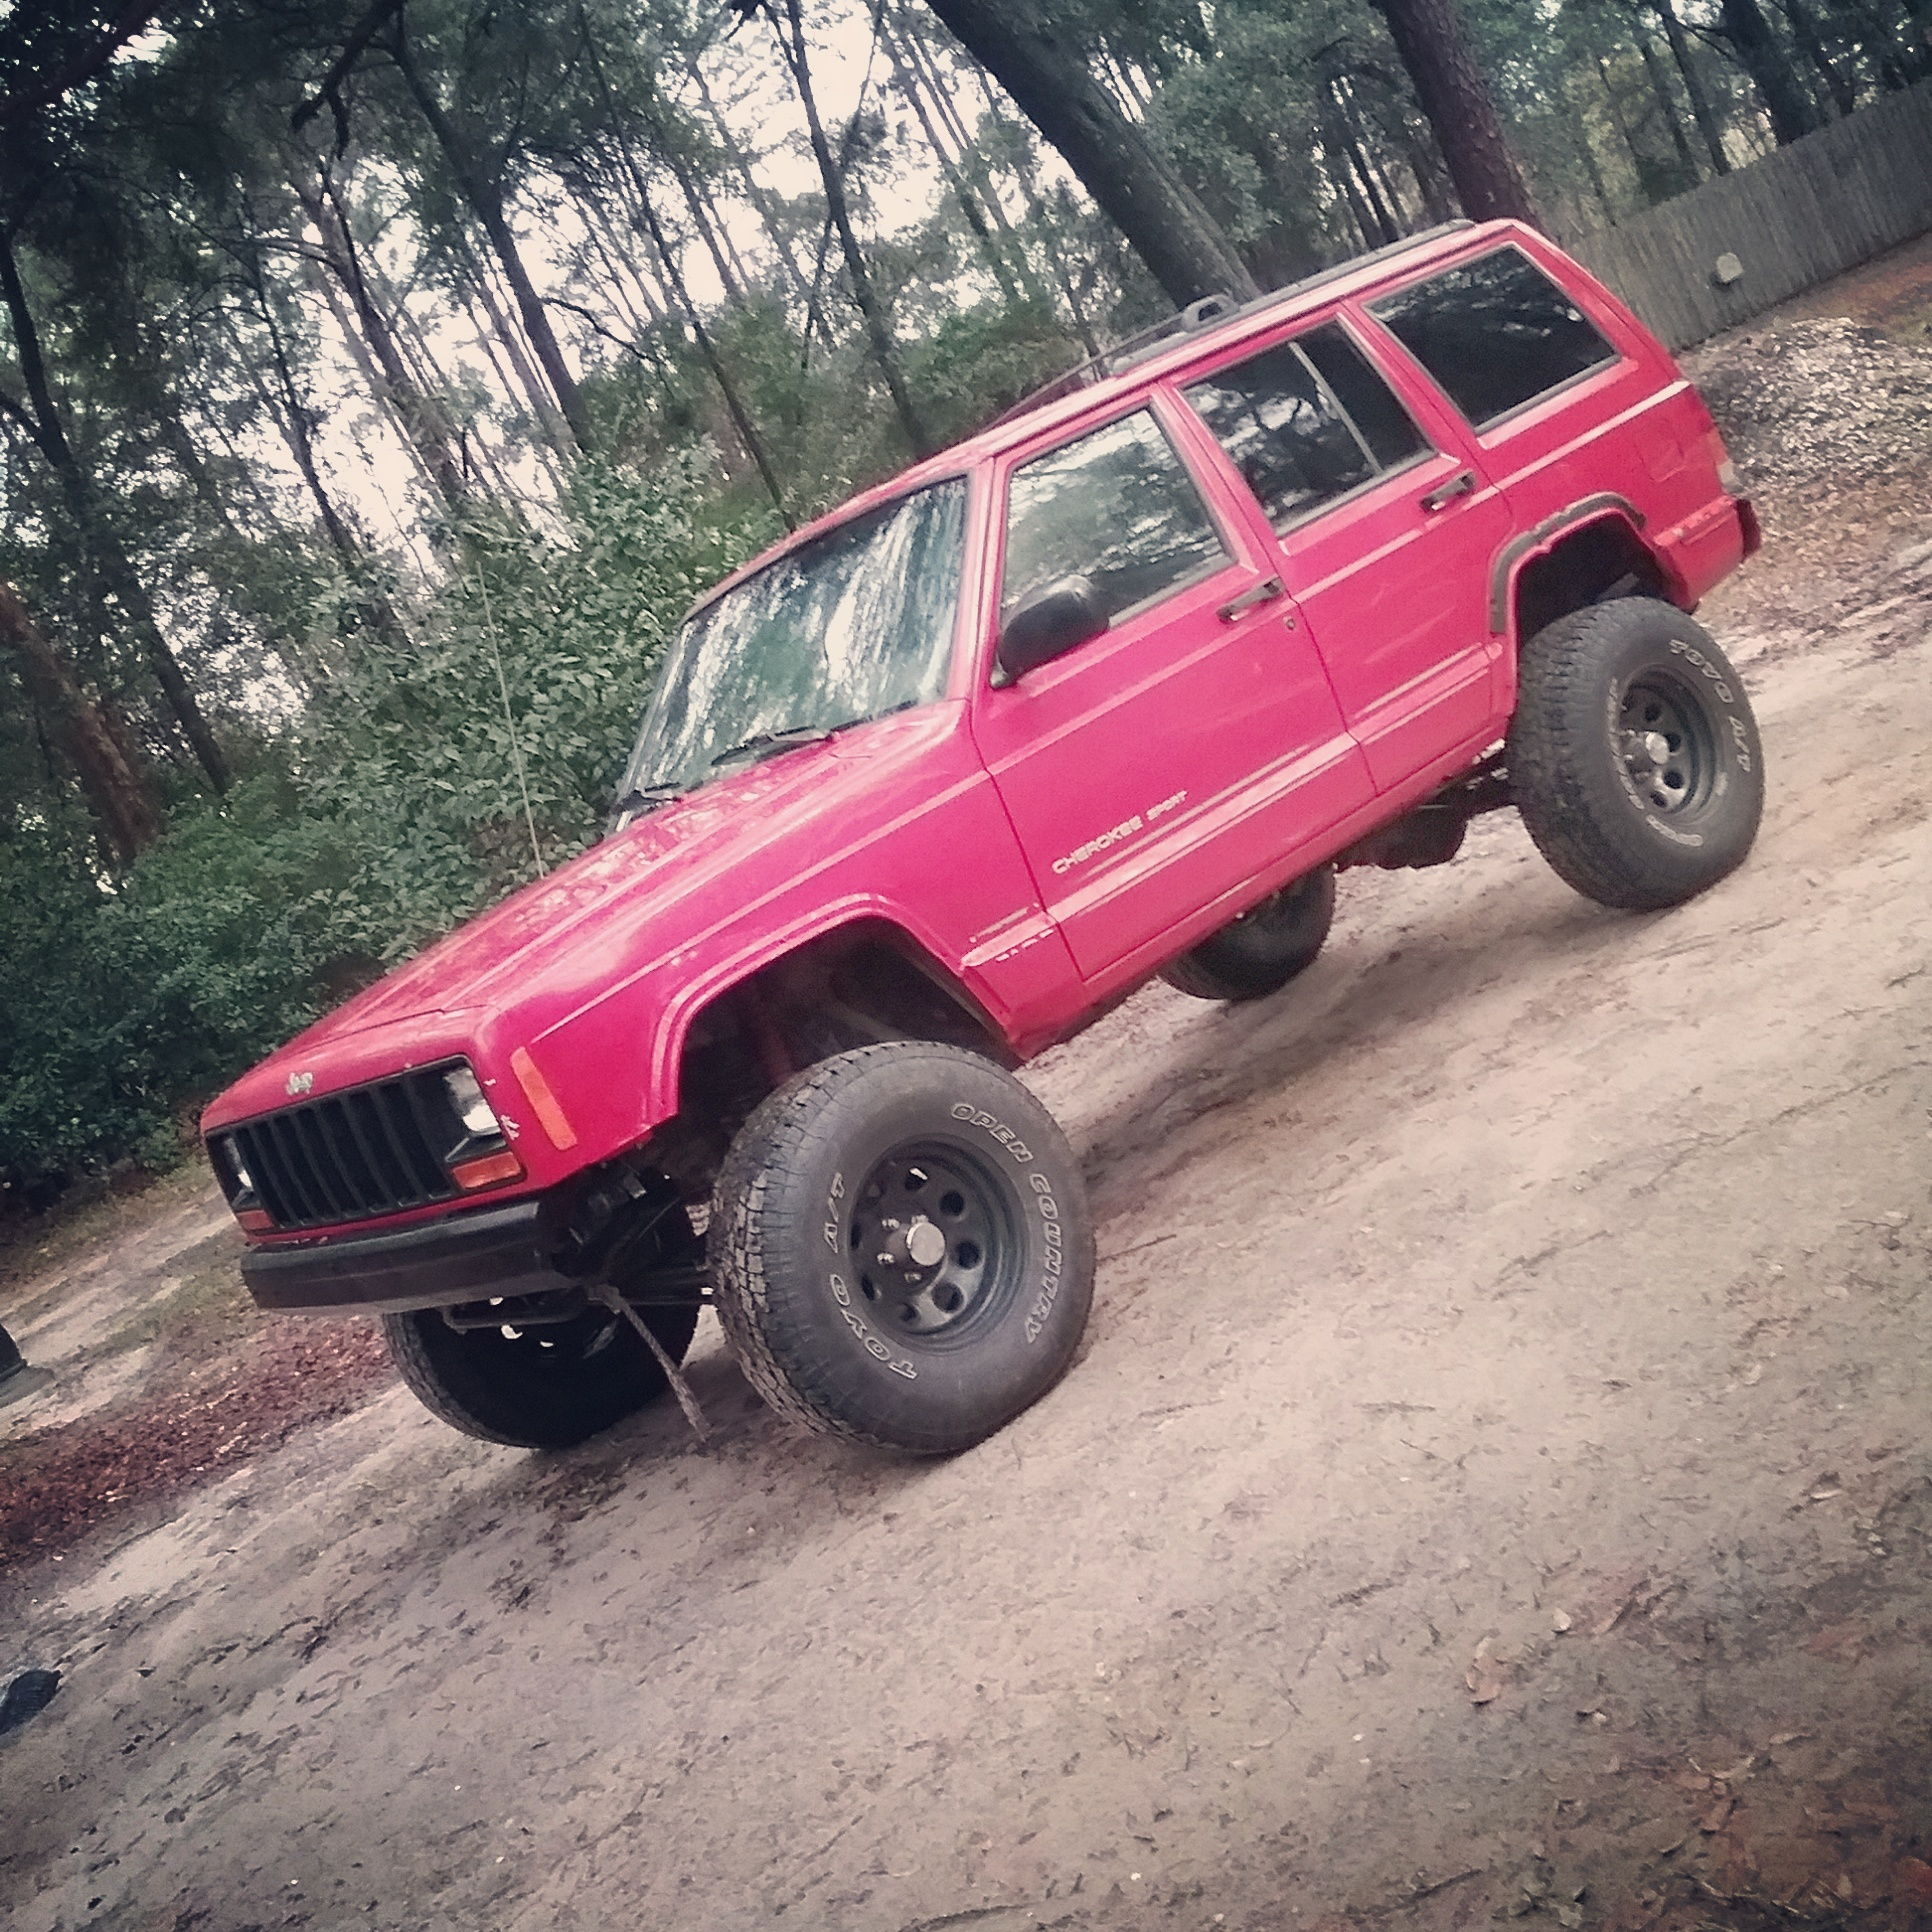 The Jeep We Purchased: Bought An XJ How Can I Measure The Lift It Has?